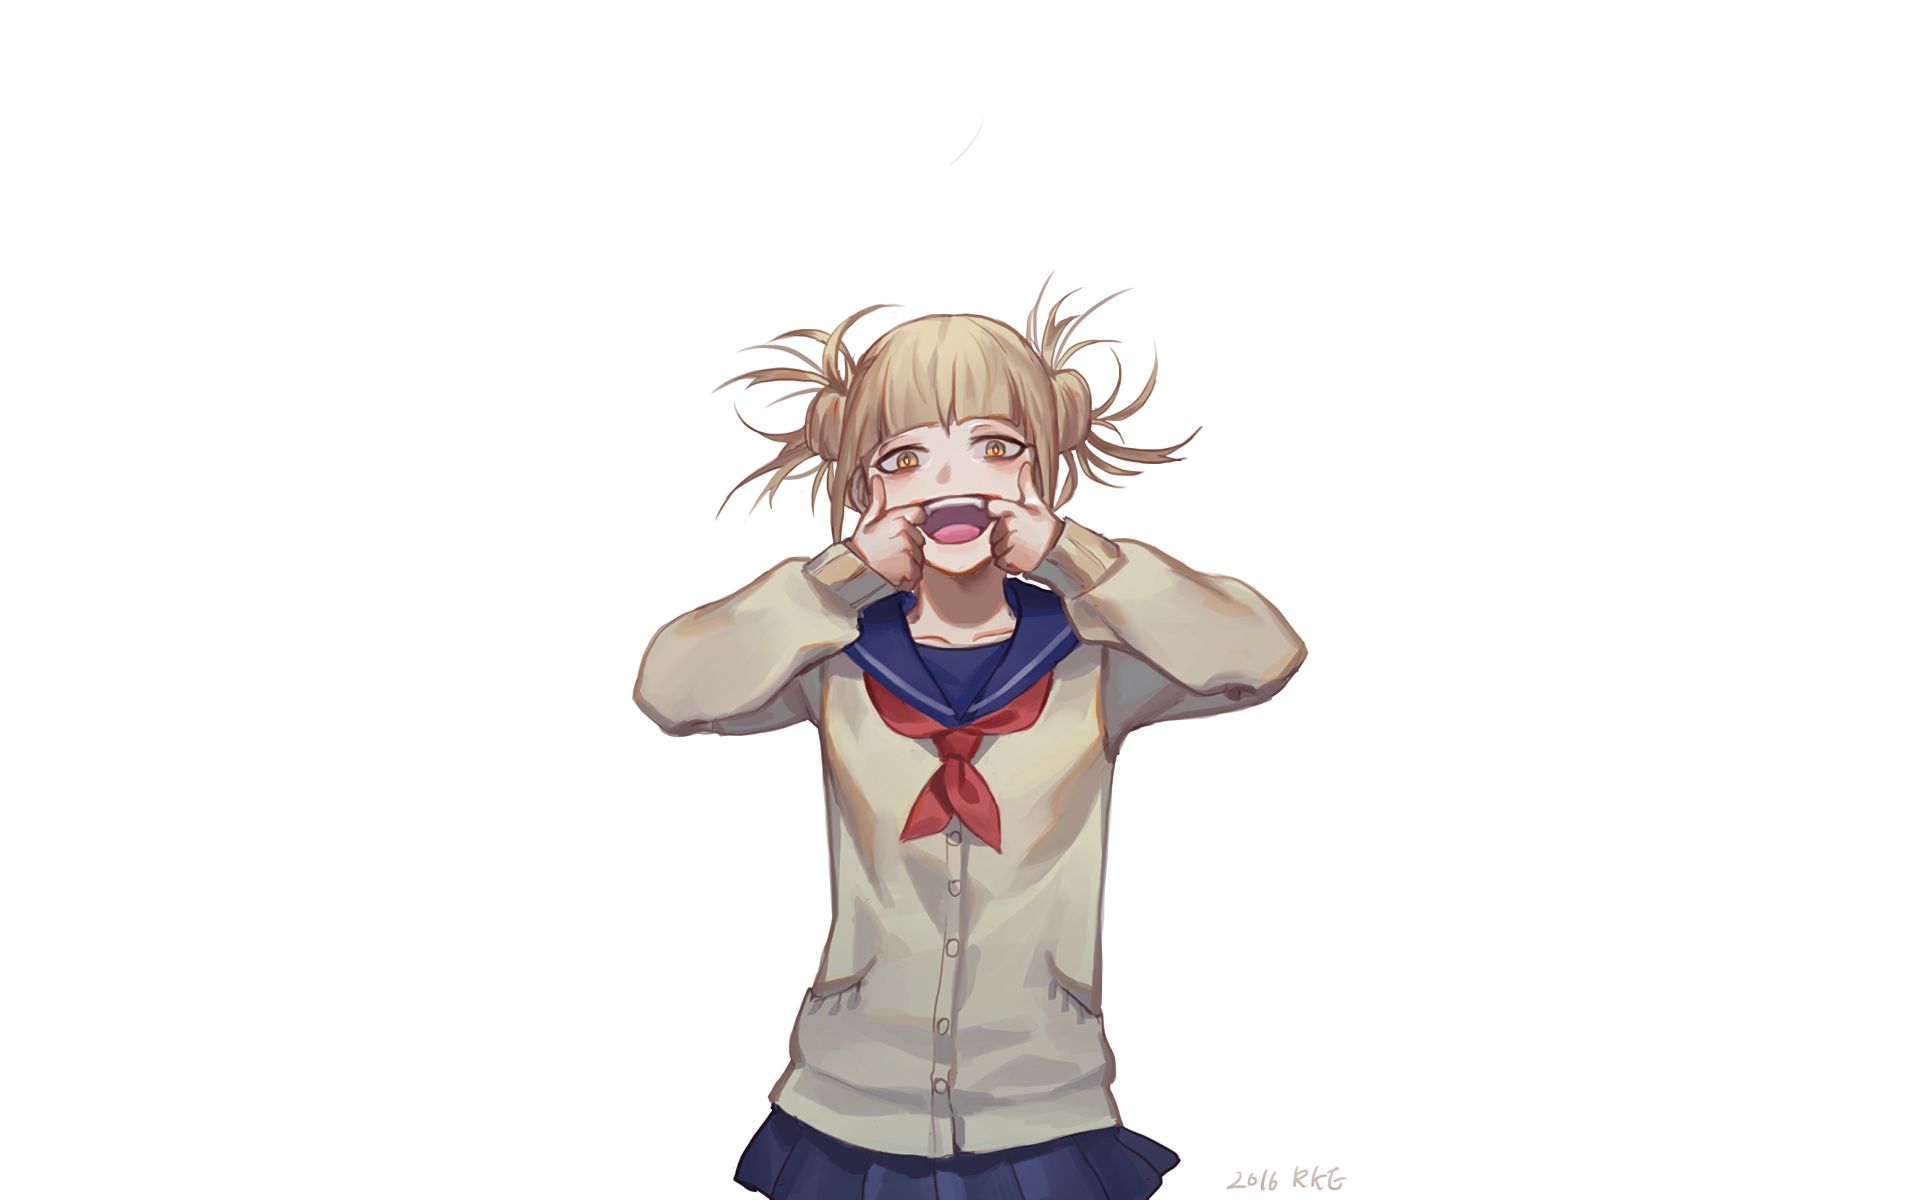 146 Himiko Toga Hd Wallpapers Background Images Wallpaper Abyss